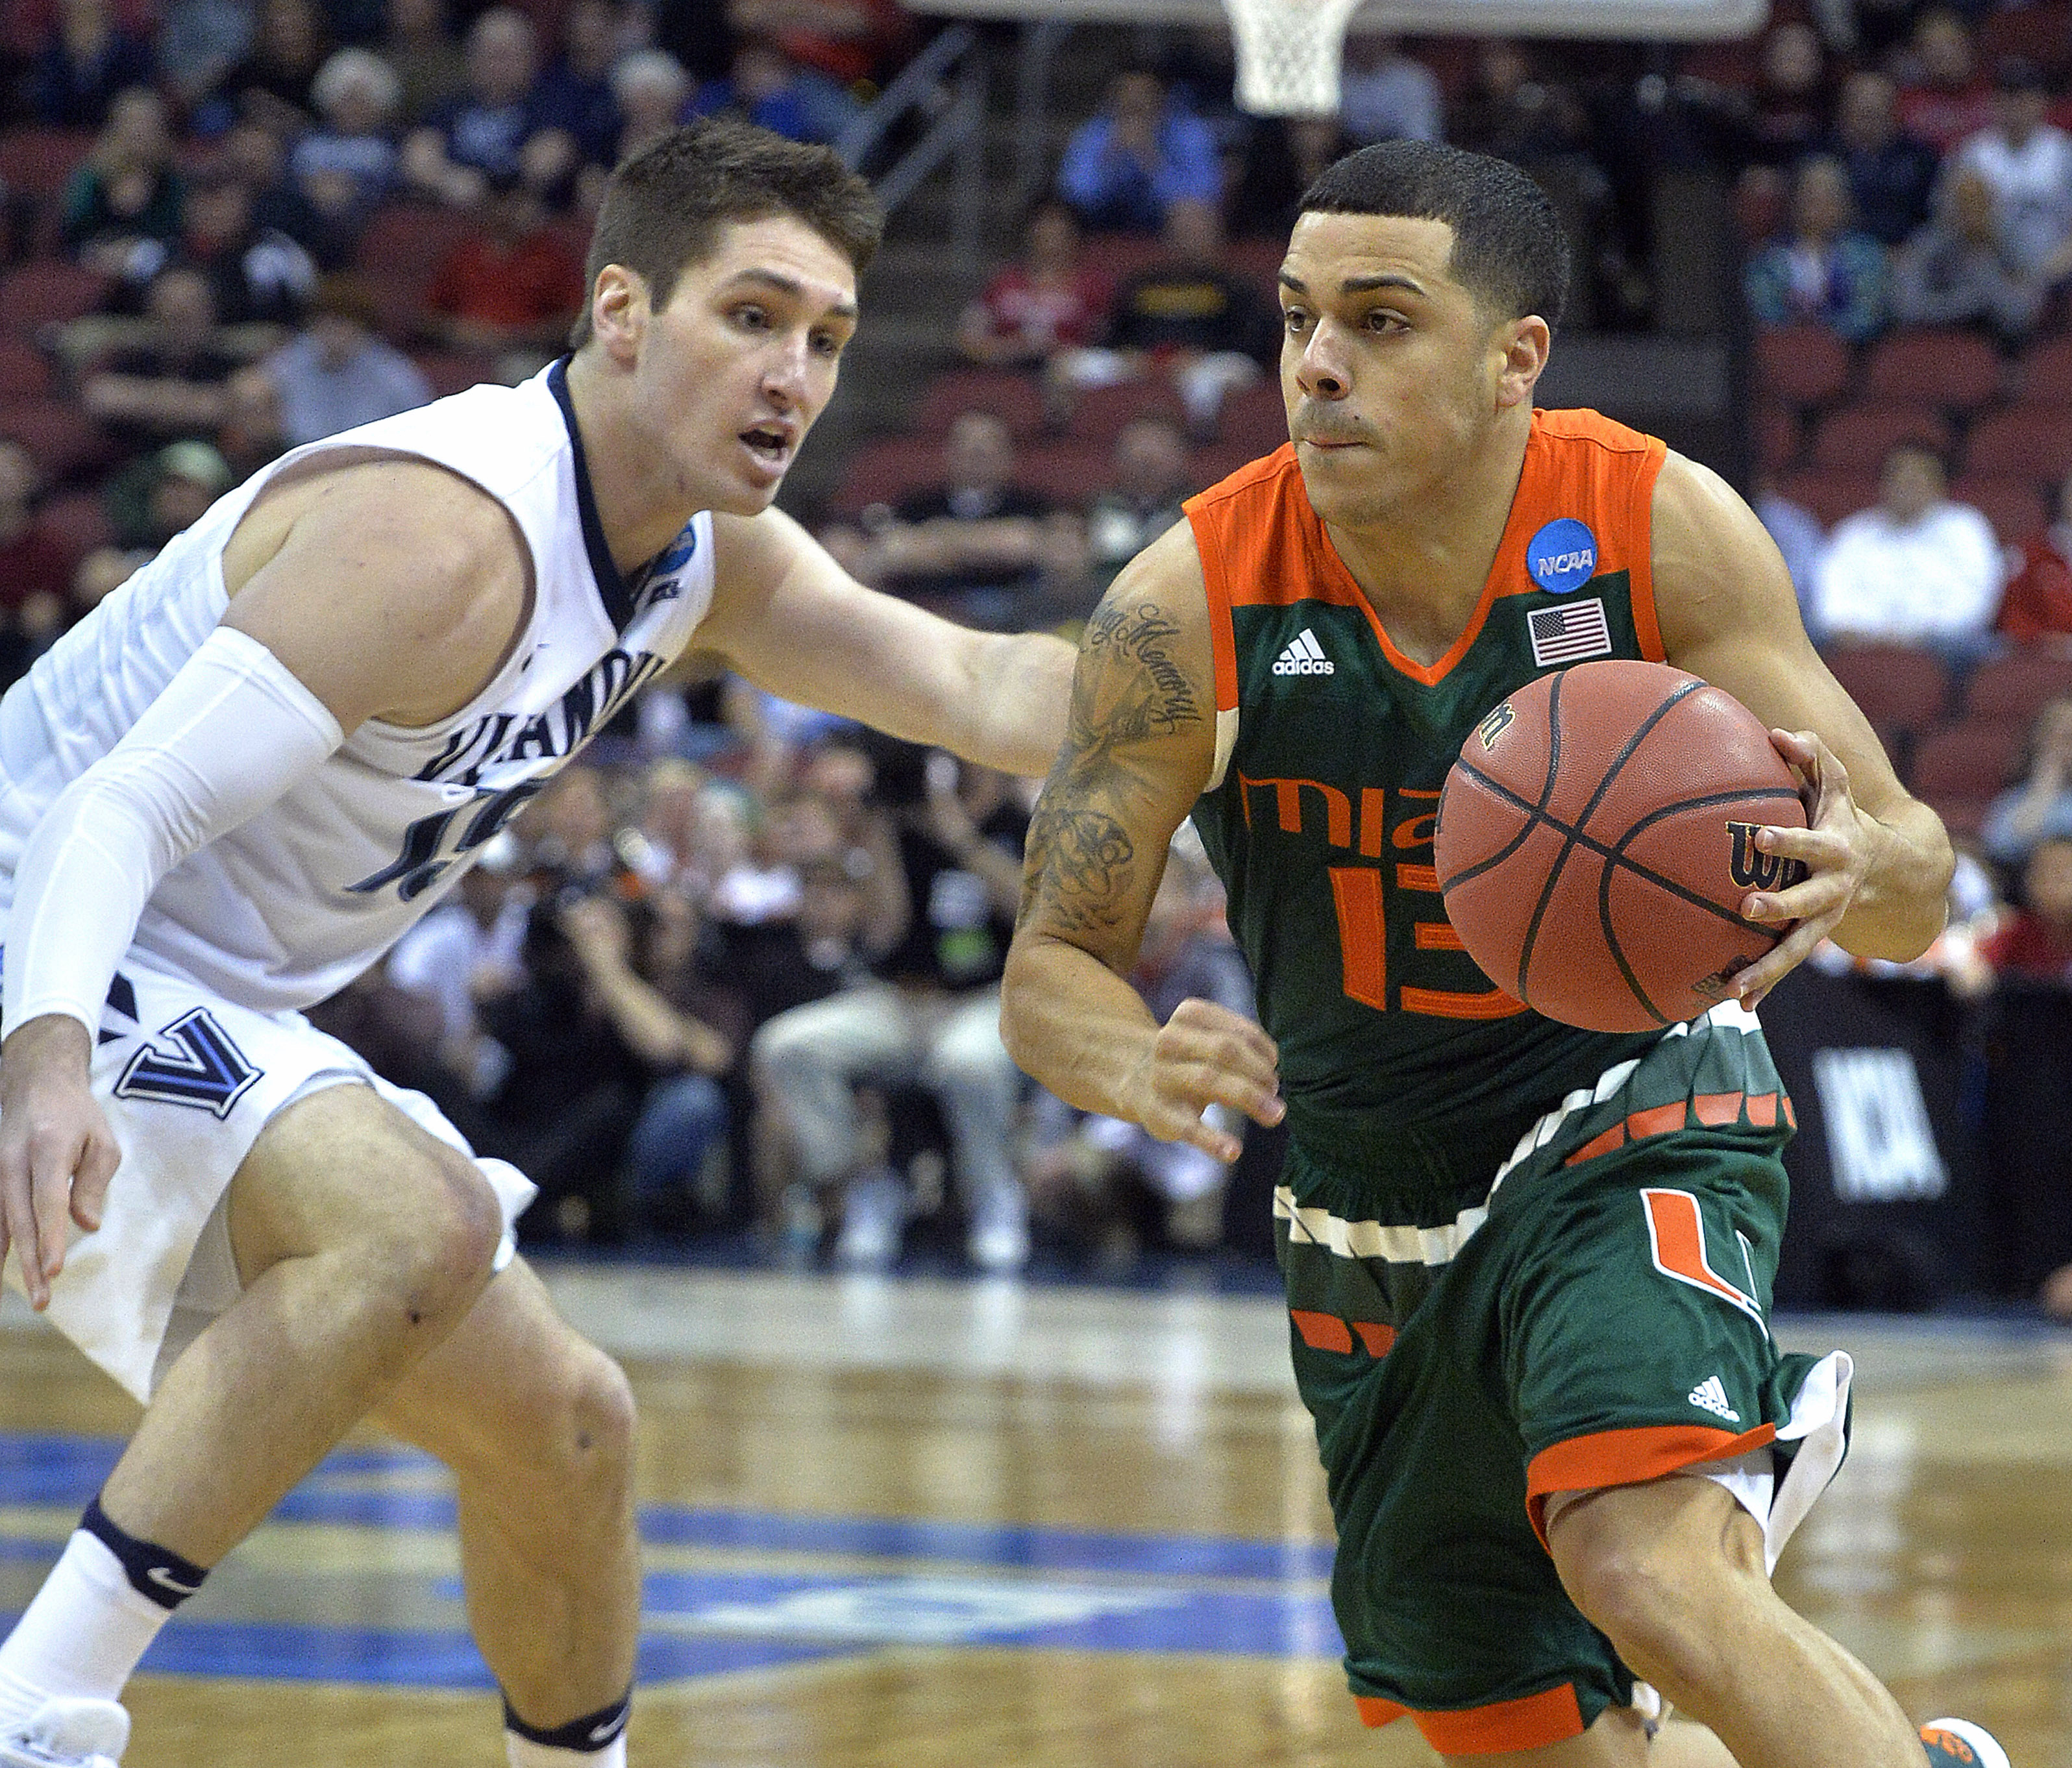 Miami guard Angel Rodriguez (13) drives around Villanova guard Ryan Arcidiacono (15) during the first half of an NCAA college basketball game in the regional semifinals of the men's NCAA Tournament in Louisville, Ky., Thursday, March 24, 2016. (AP Photo/T